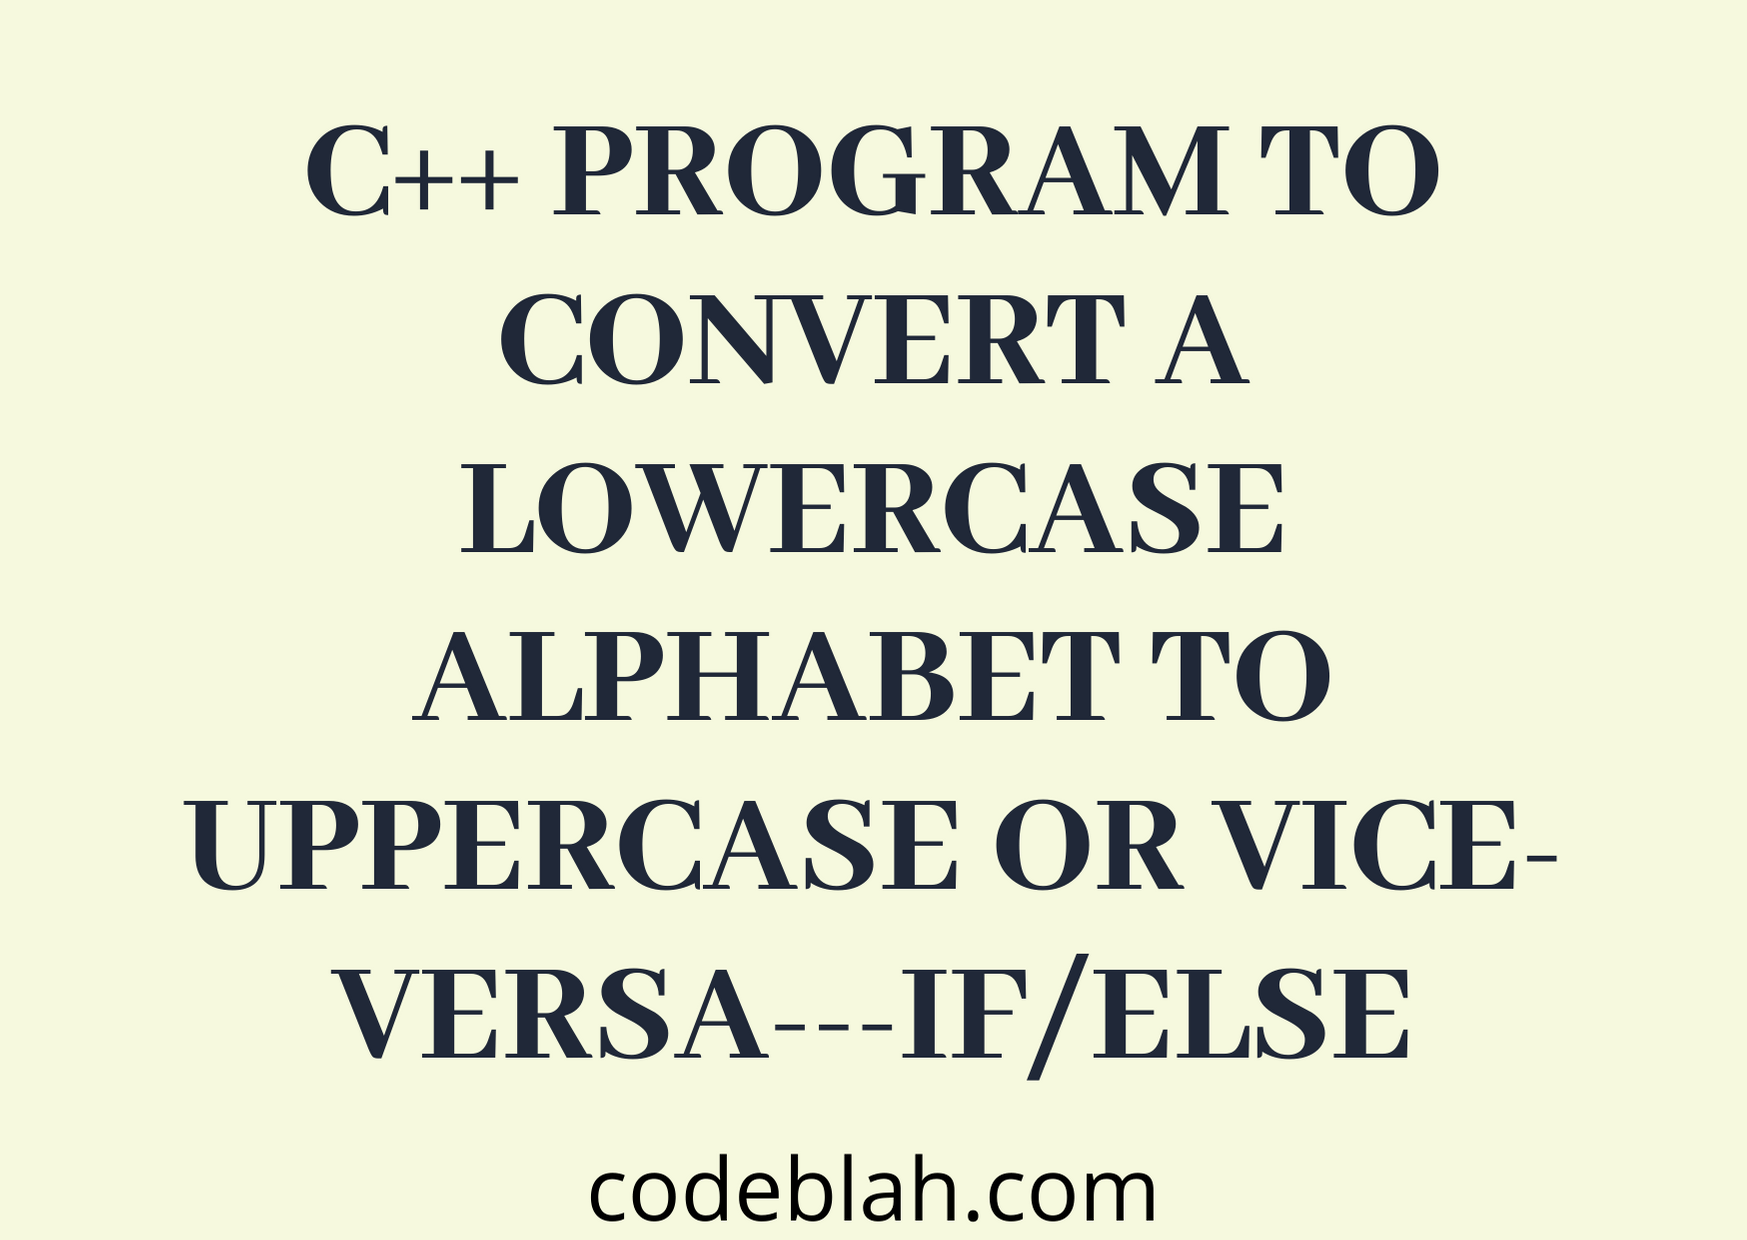 C++ Program to Convert Lowercase to Uppercase